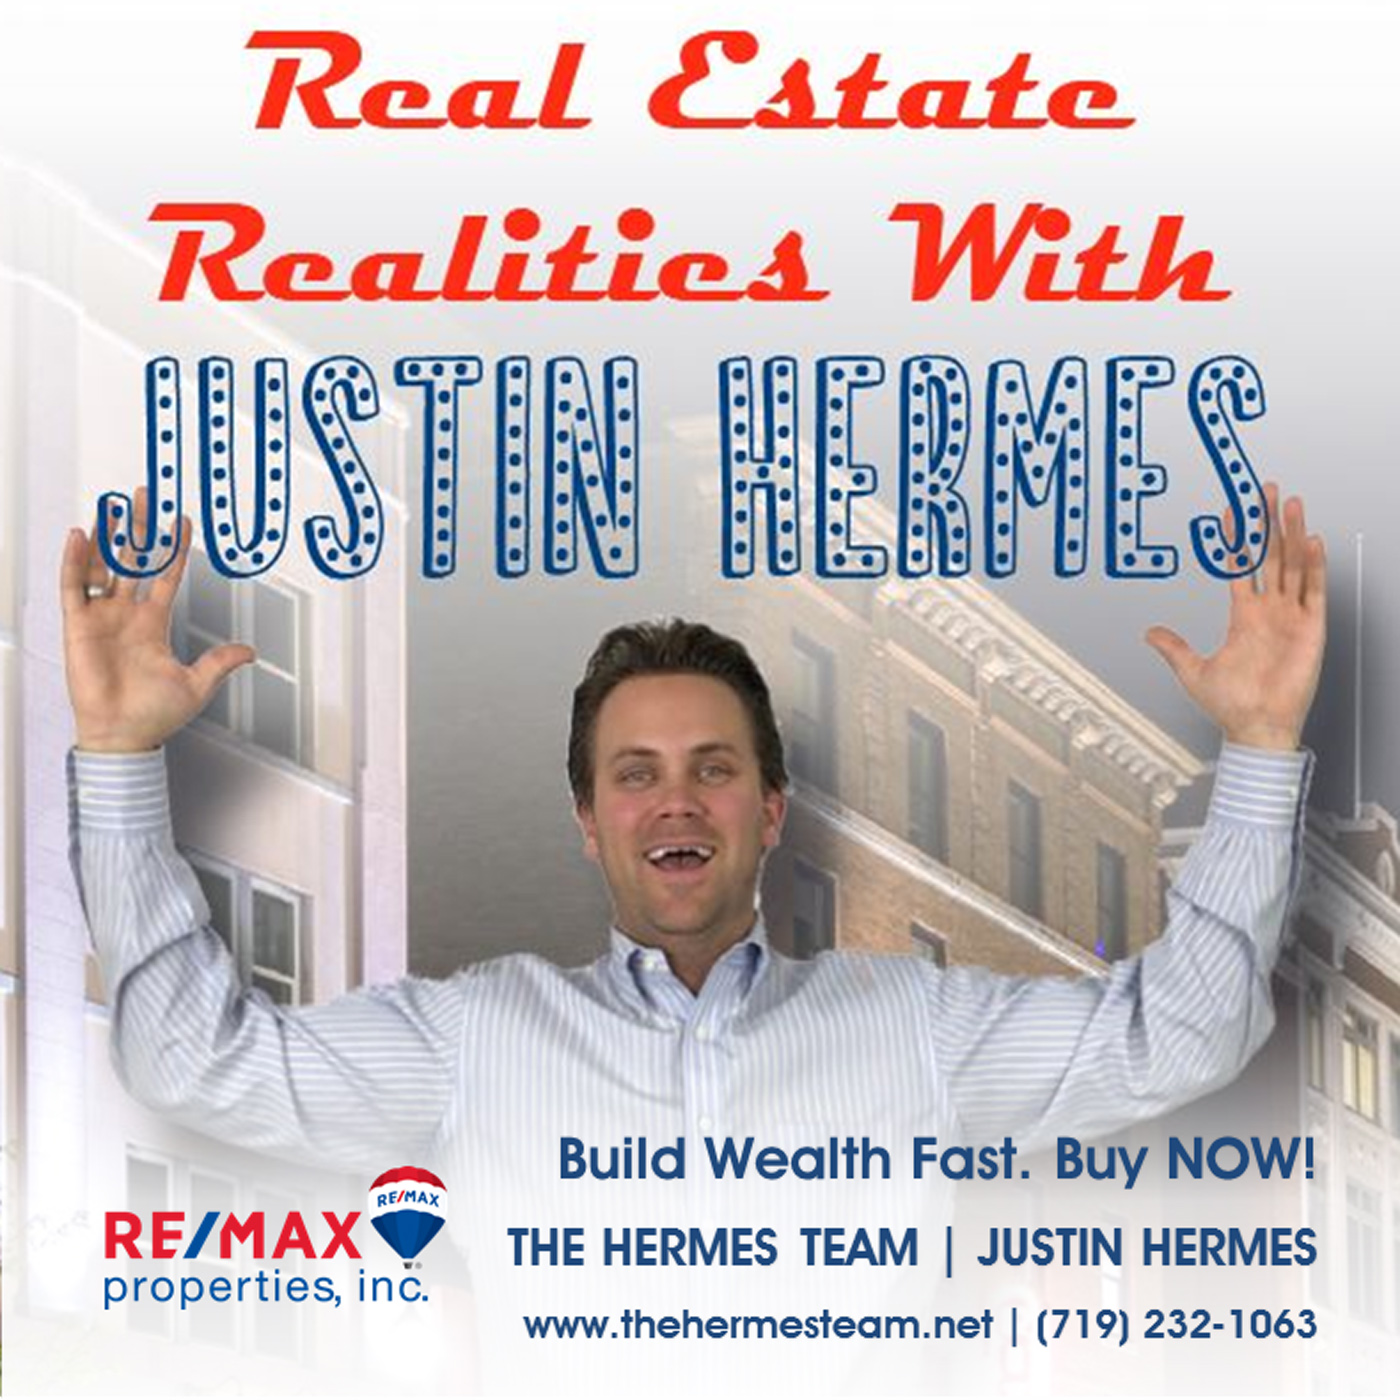 Real Estate Realities with Justin Hermes - July 31, 2018